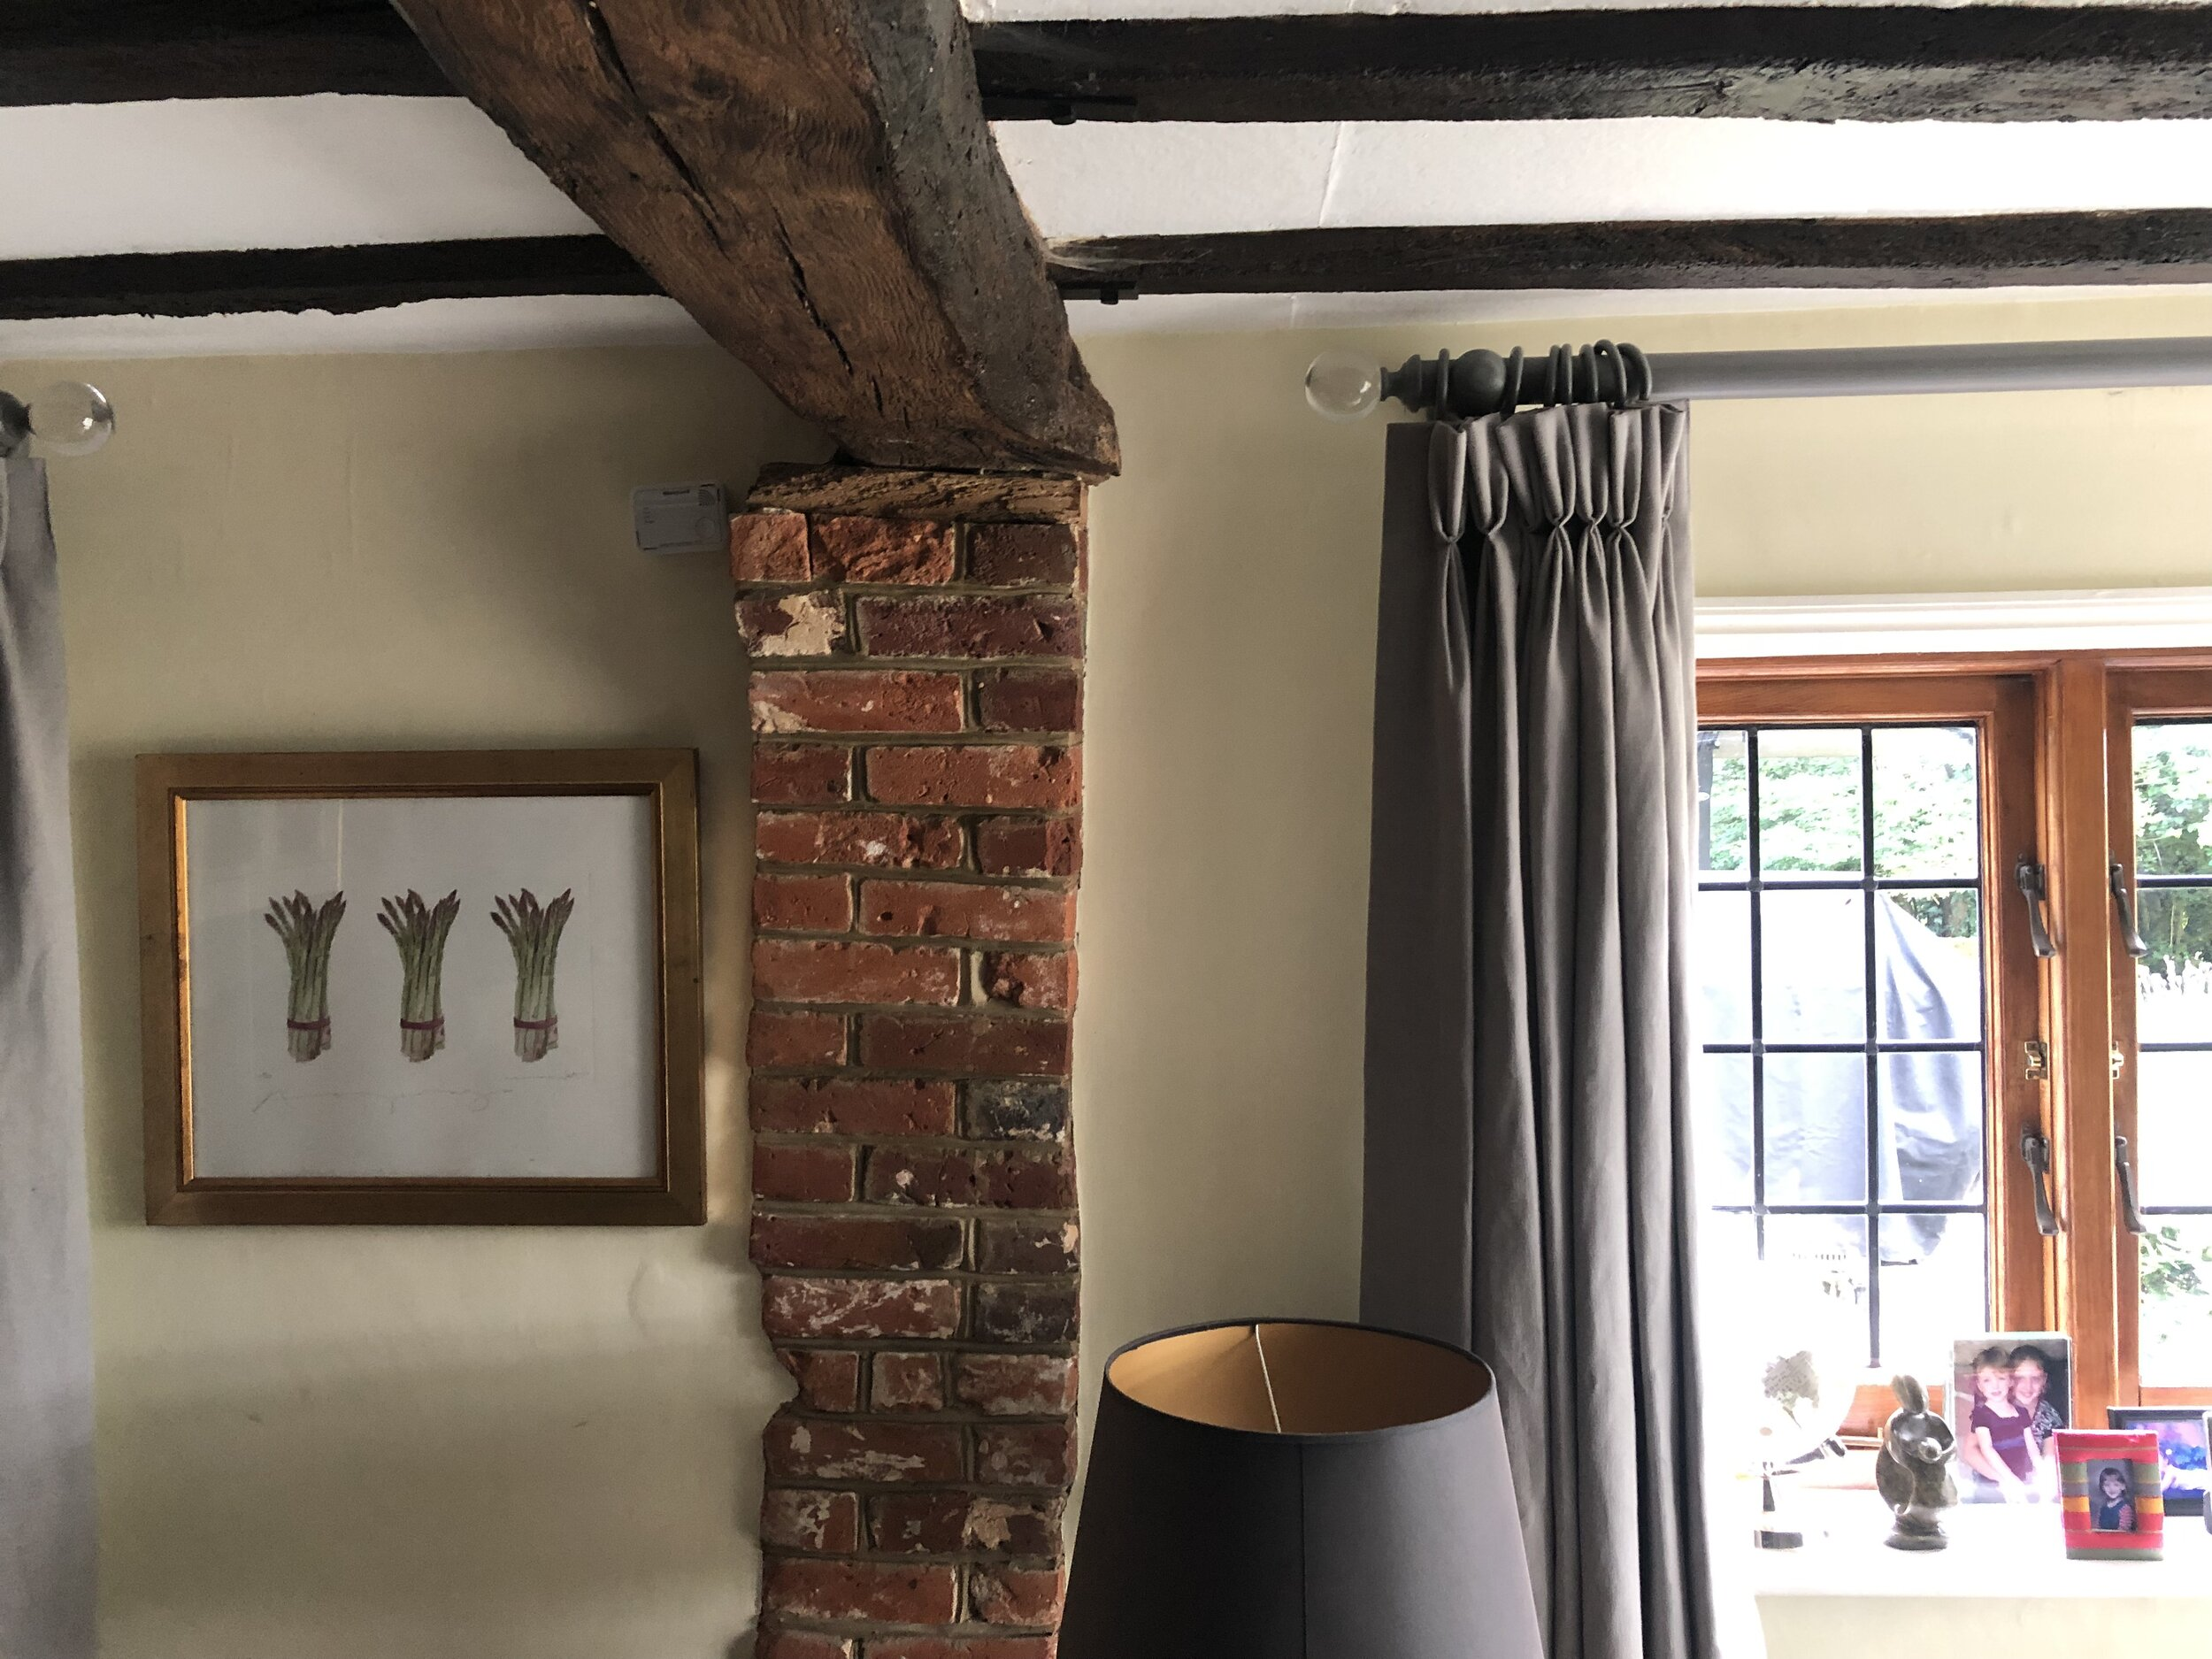 18th century modification to the 17th century timber frame